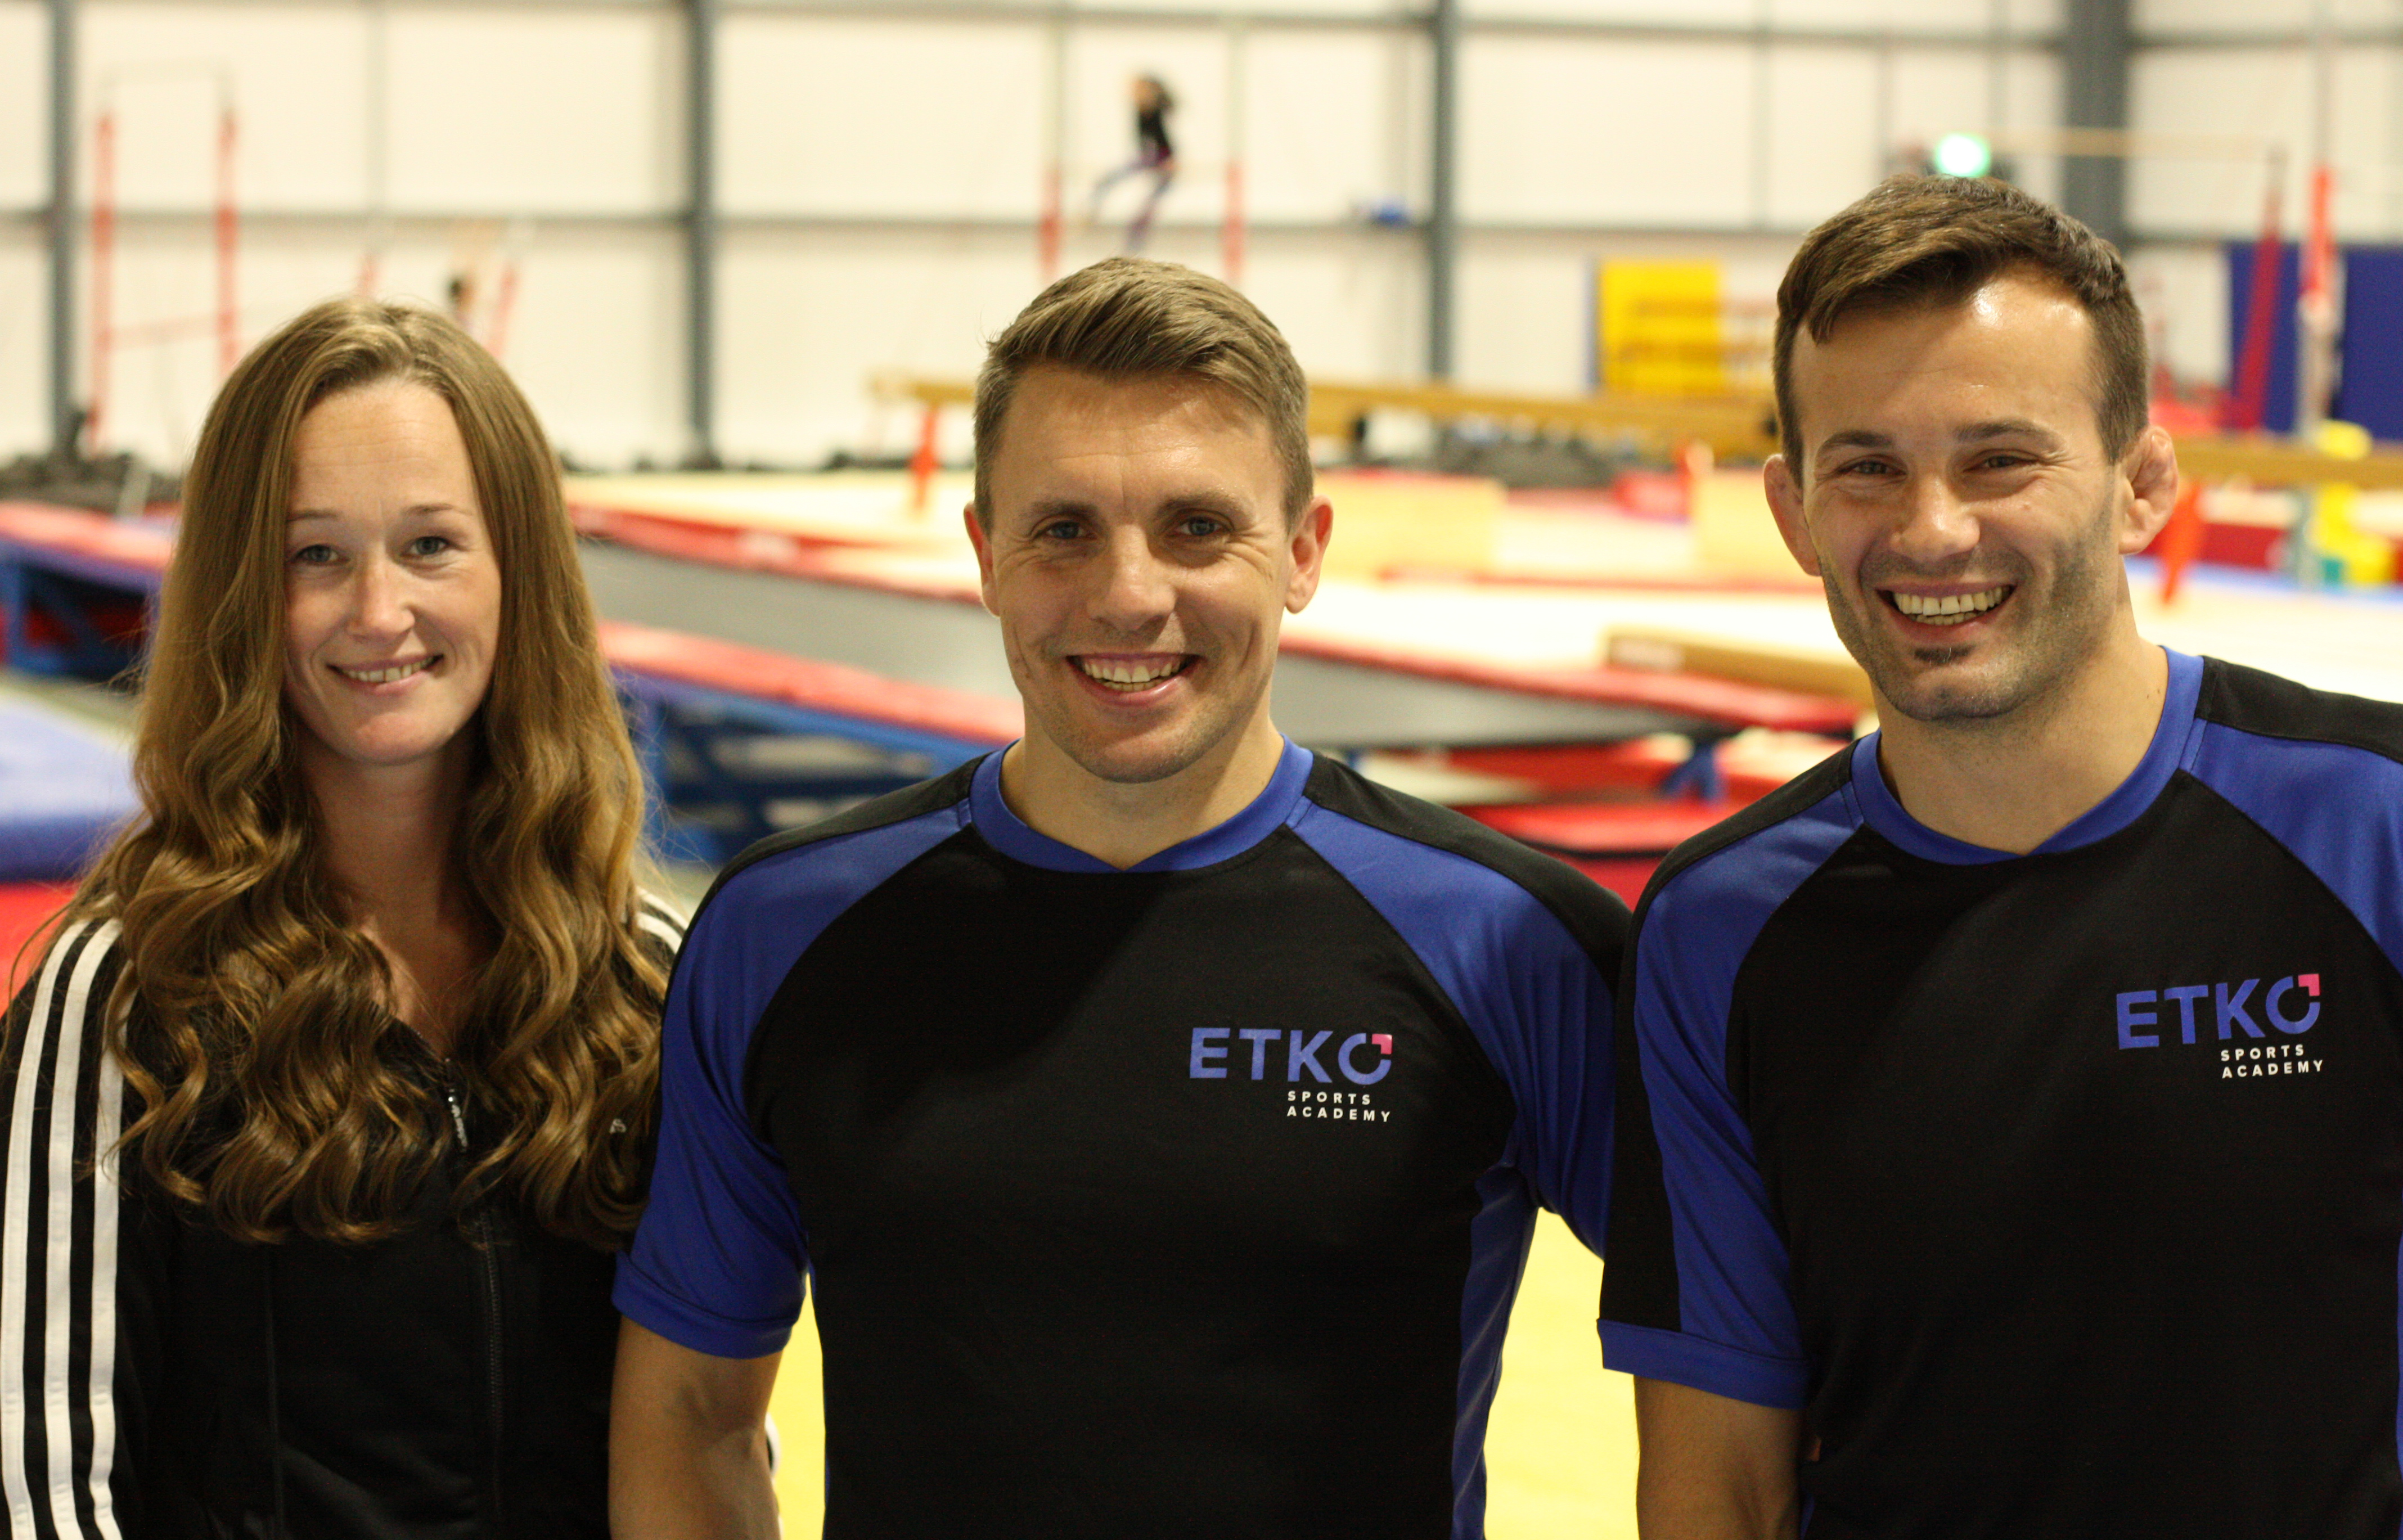 ETKO Sports Academy directors, Laura and Vio Etko with health and safety/development manager, Dan Griffiths